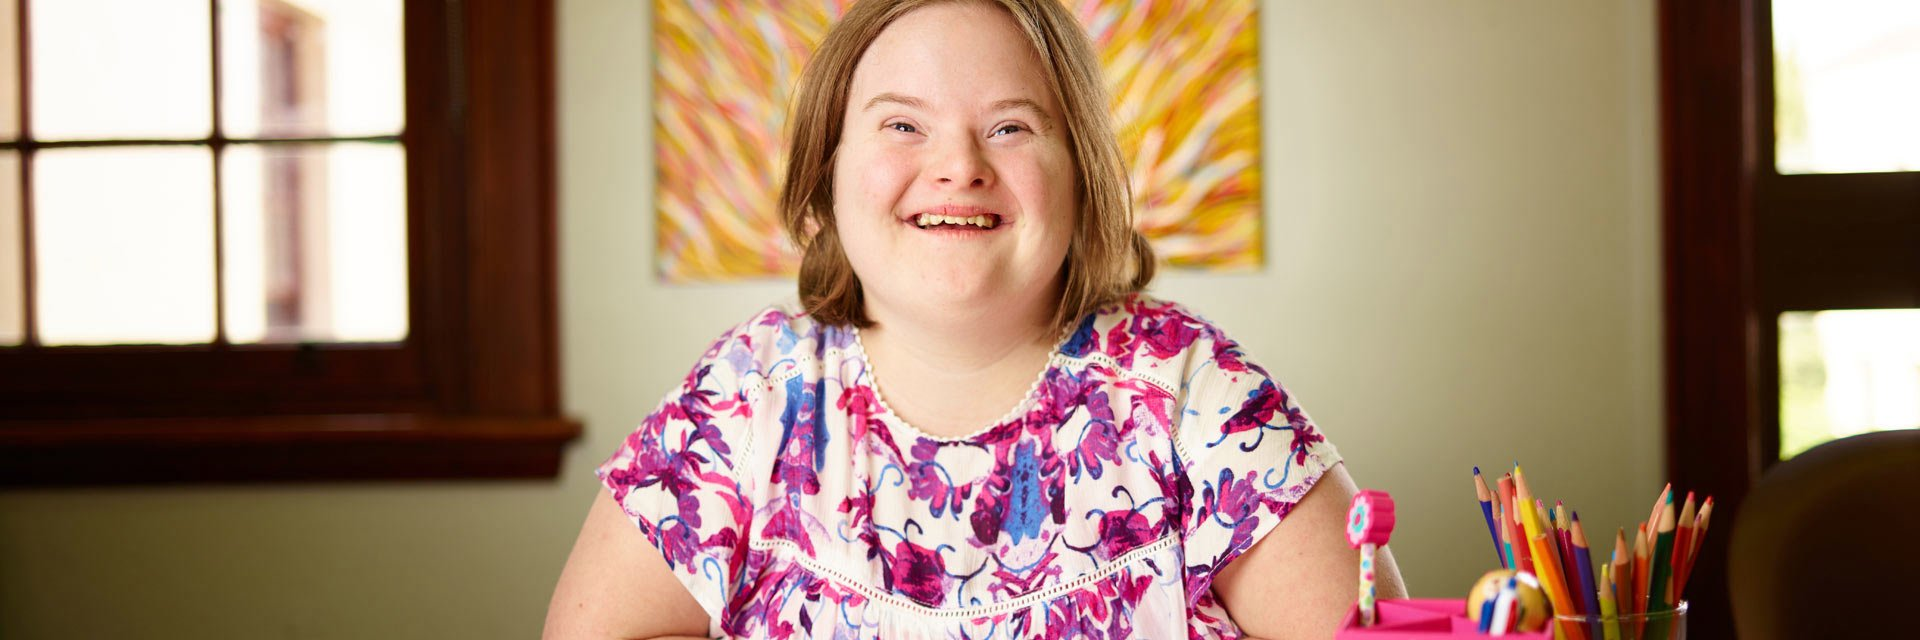 Woman with a disability in an office smiling